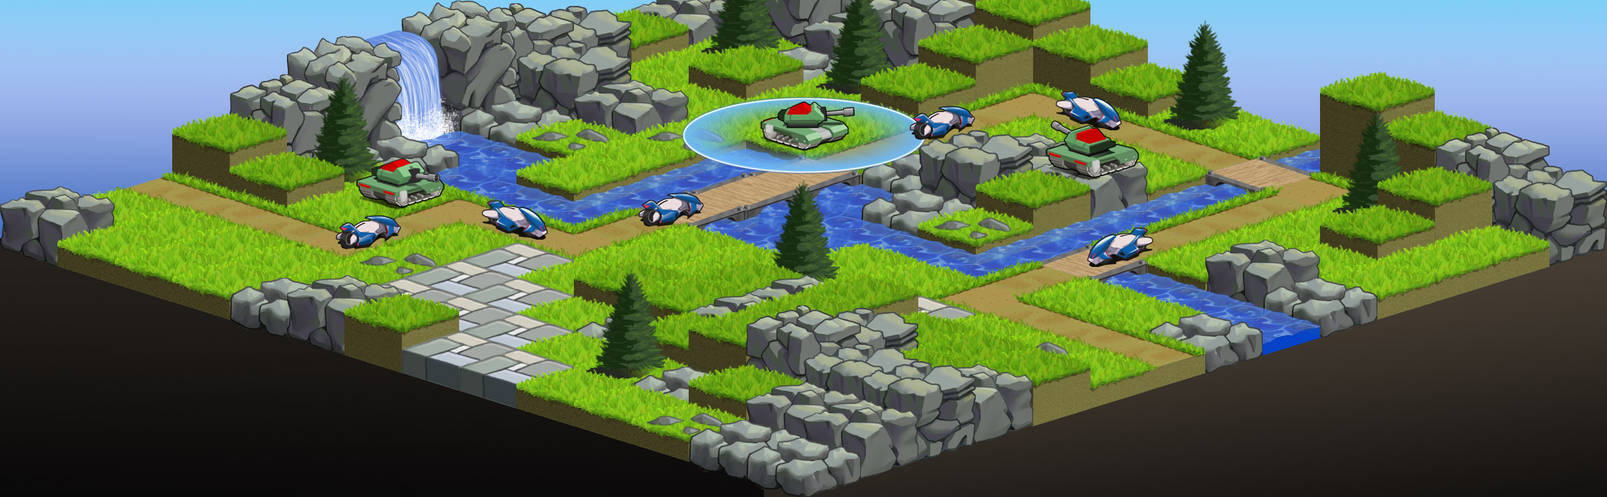 Grasslands Map1 with Tanks